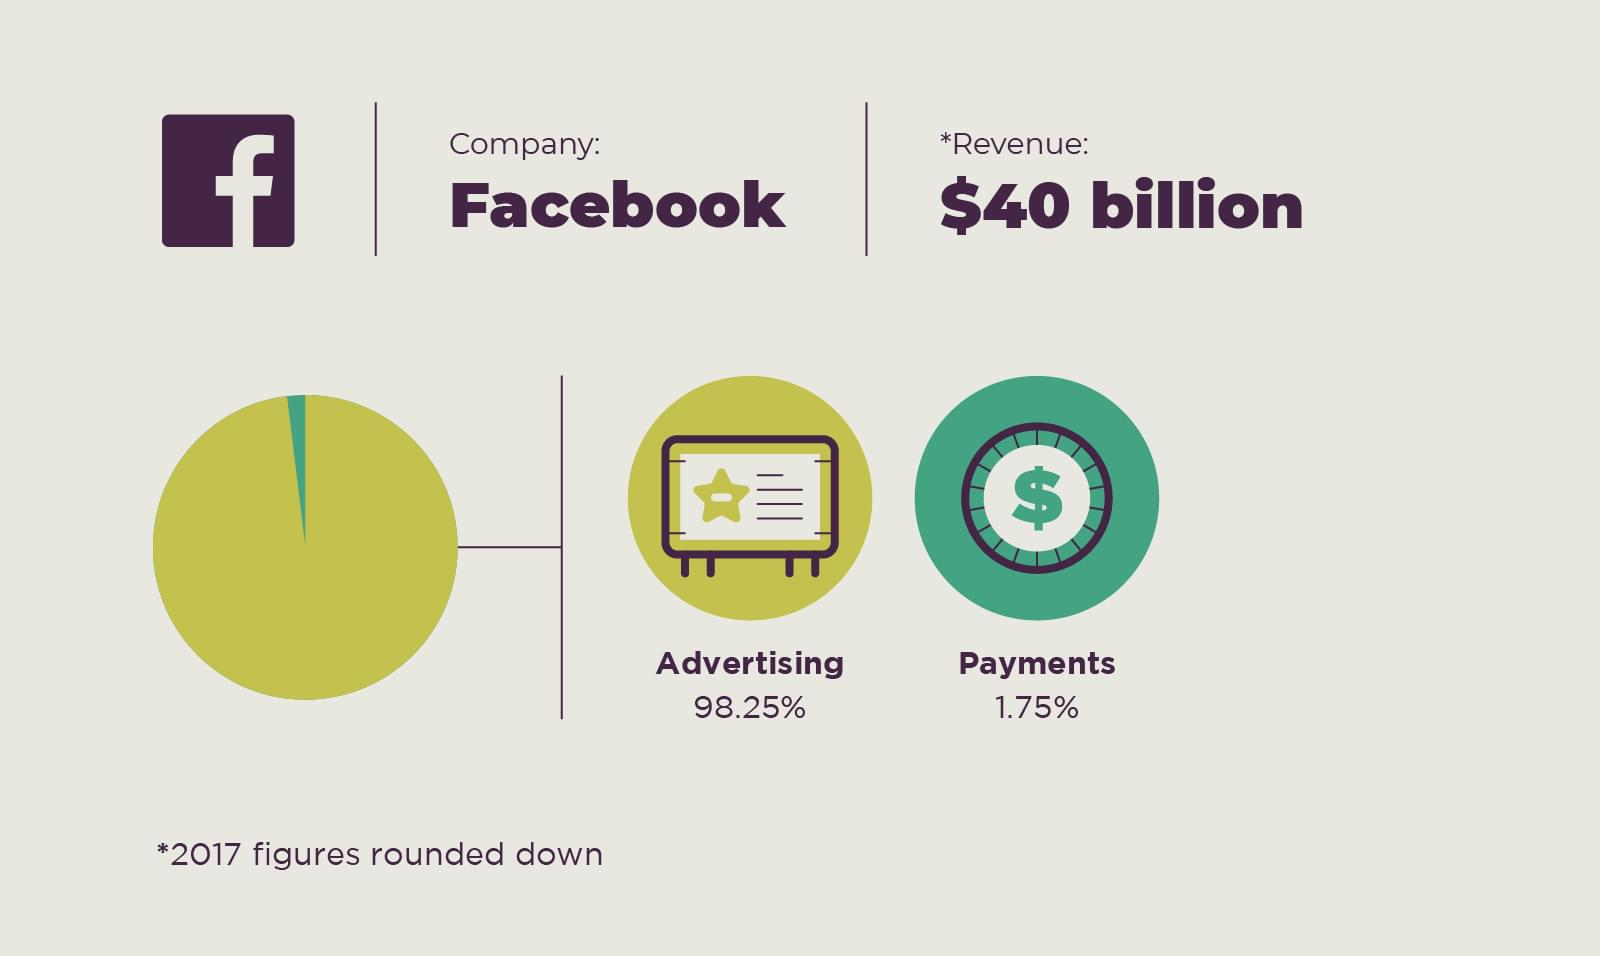 Facebook revenue dominated by advertising